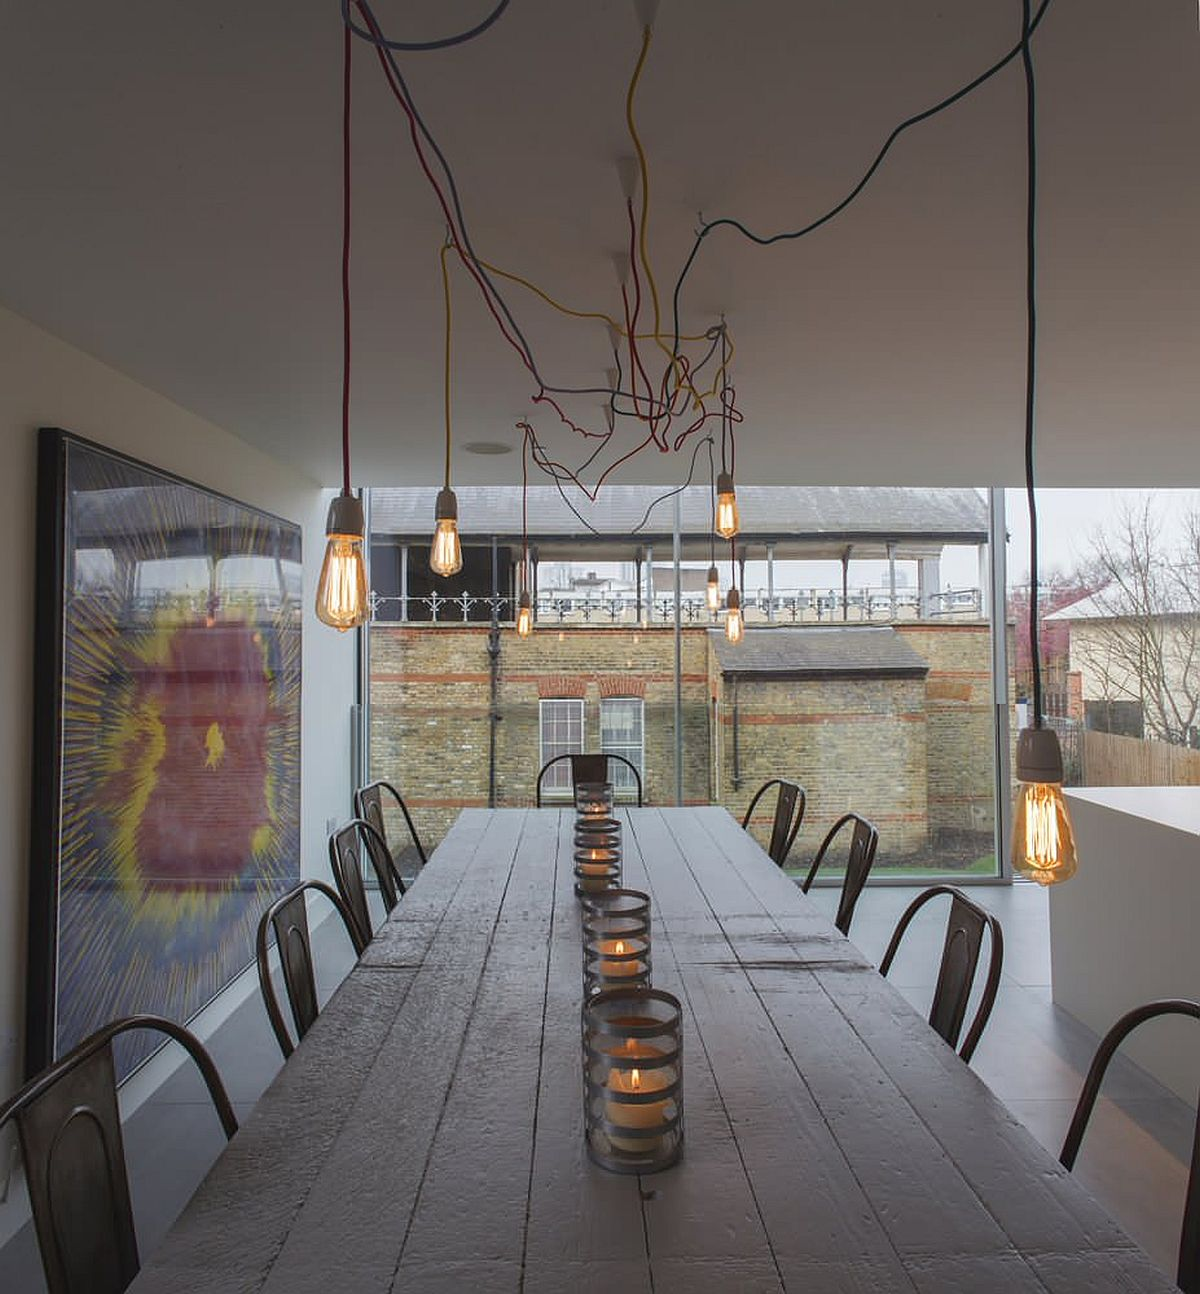 Edison bulb lighting adds industrial touches to this modern minimal dining space